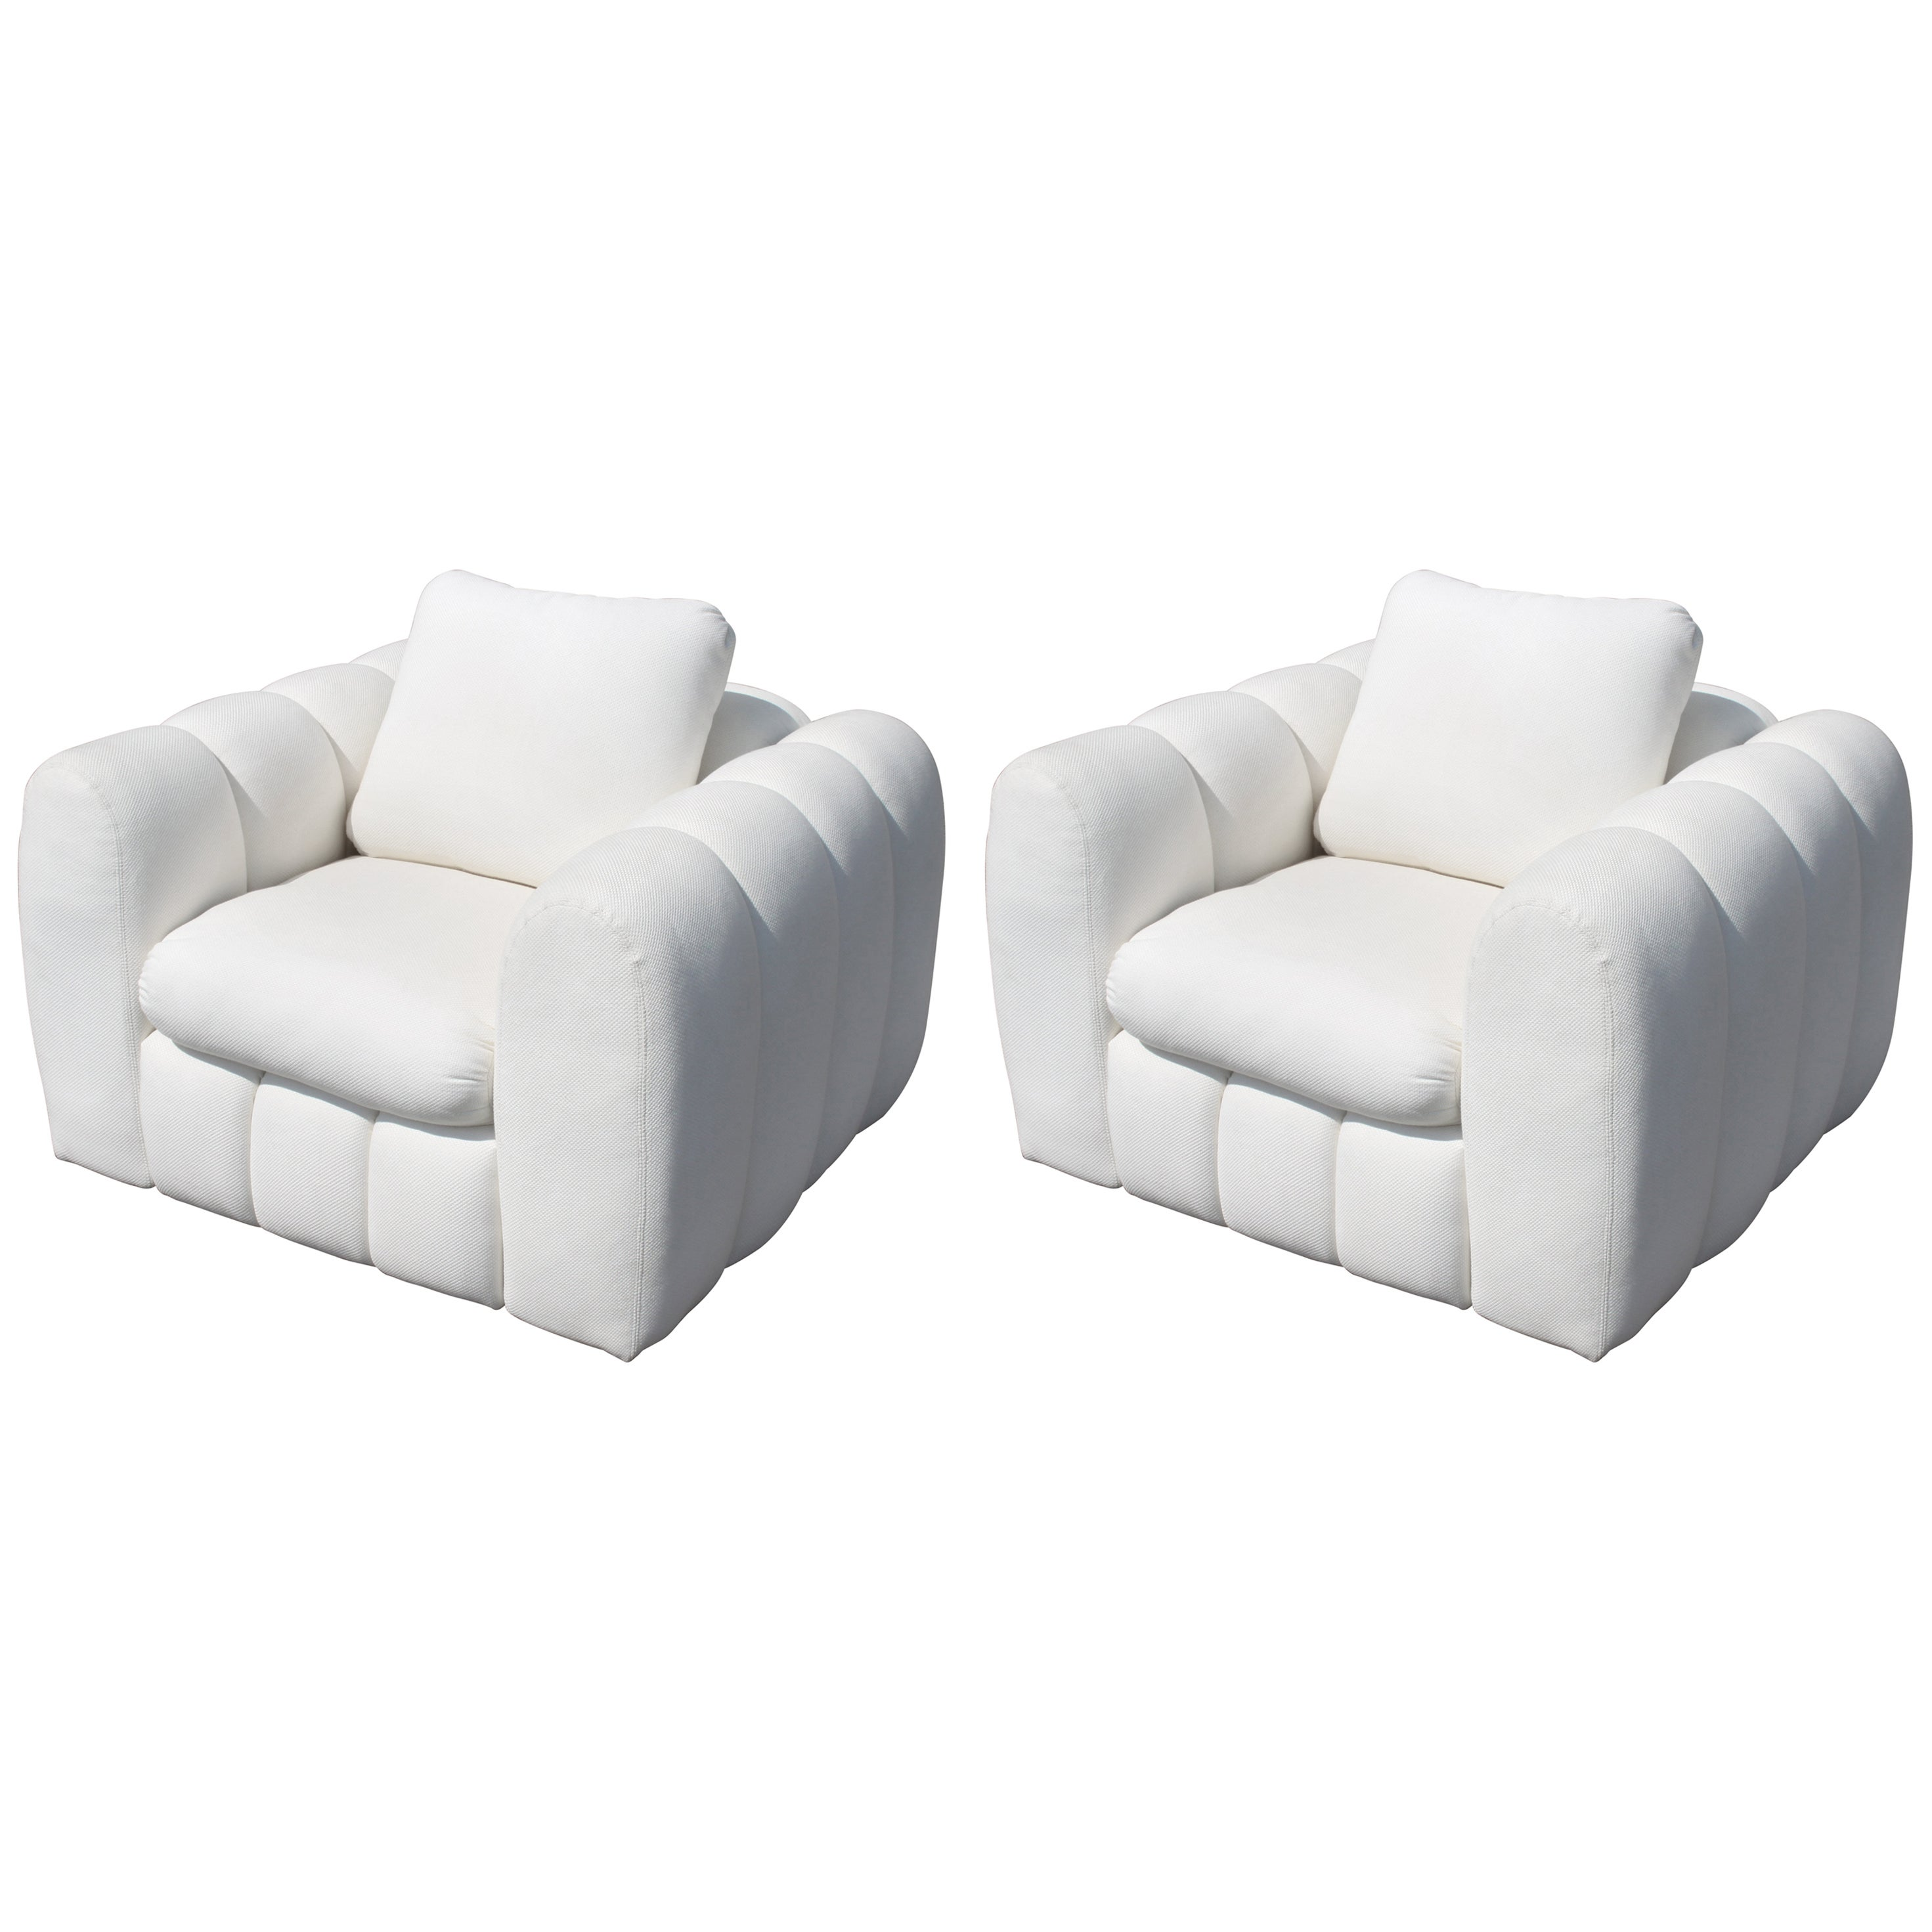 Channeled Jay Spectre White Club Chairs for Century Furniture, circa 1970s, Pair